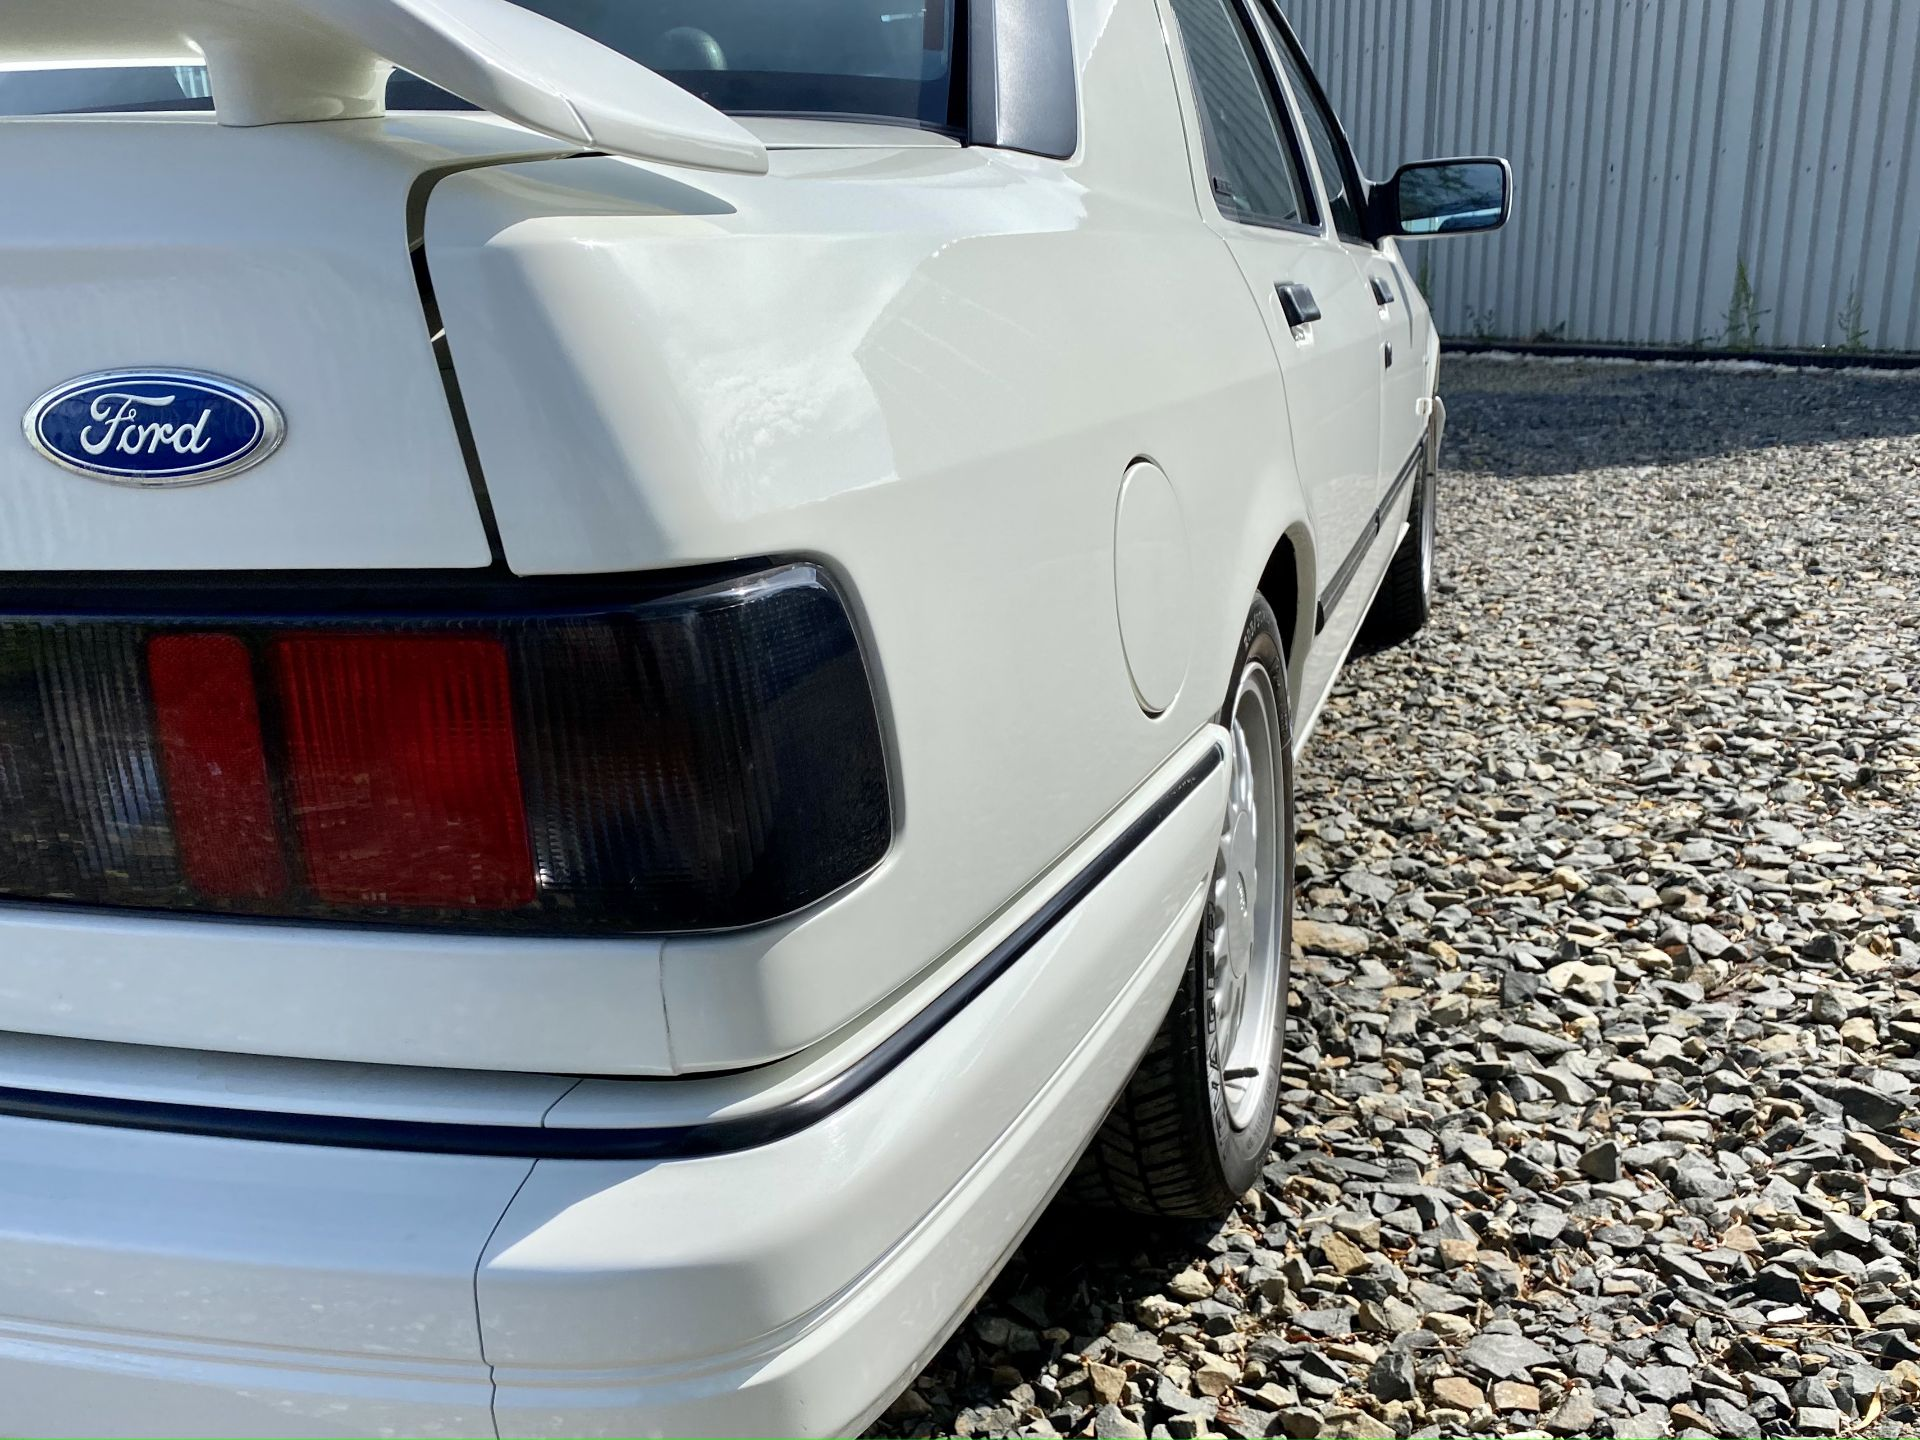 Ford Sierra Sapphire Cosworth 4x4 - Image 20 of 55